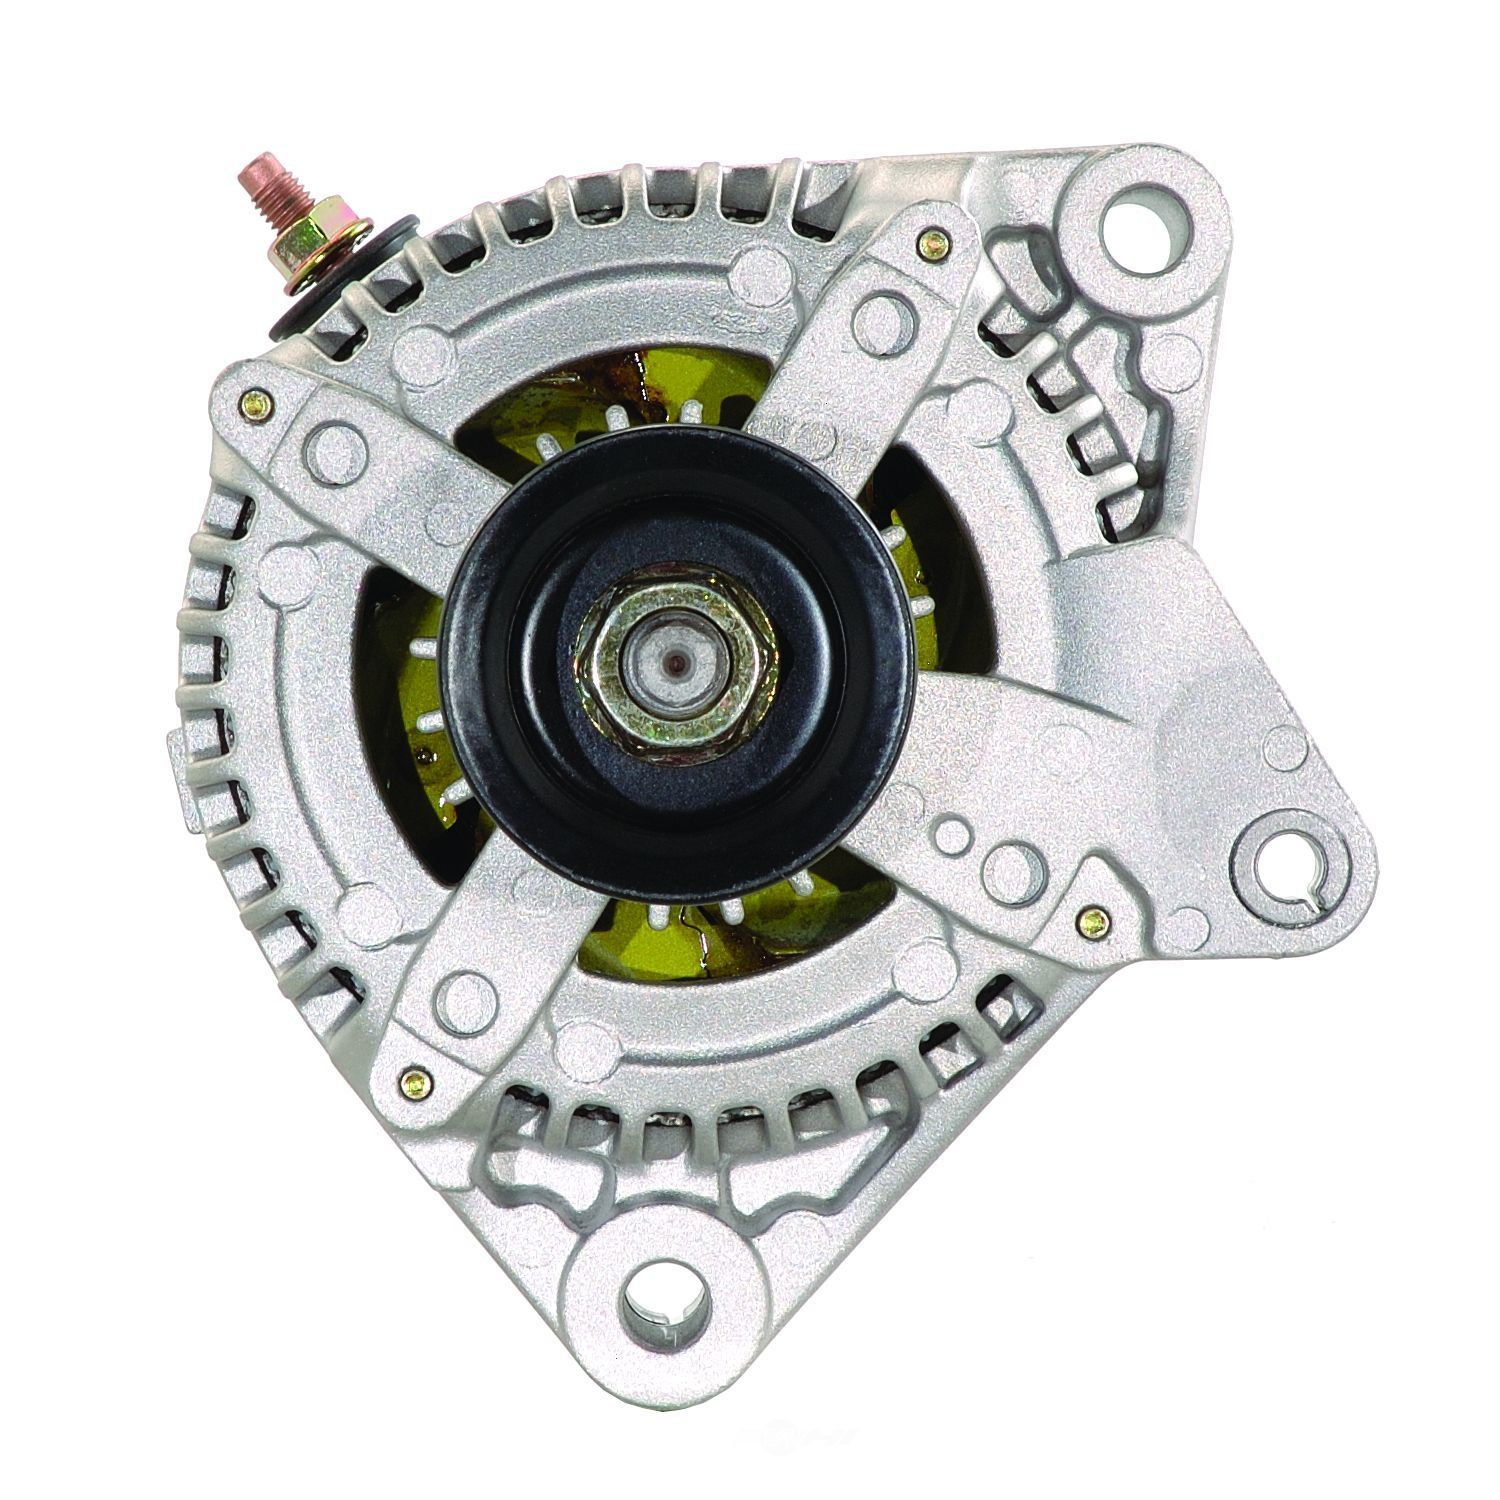 ACDELCO GOLD/PROFESSIONAL - Alternator - DCC 335-1330